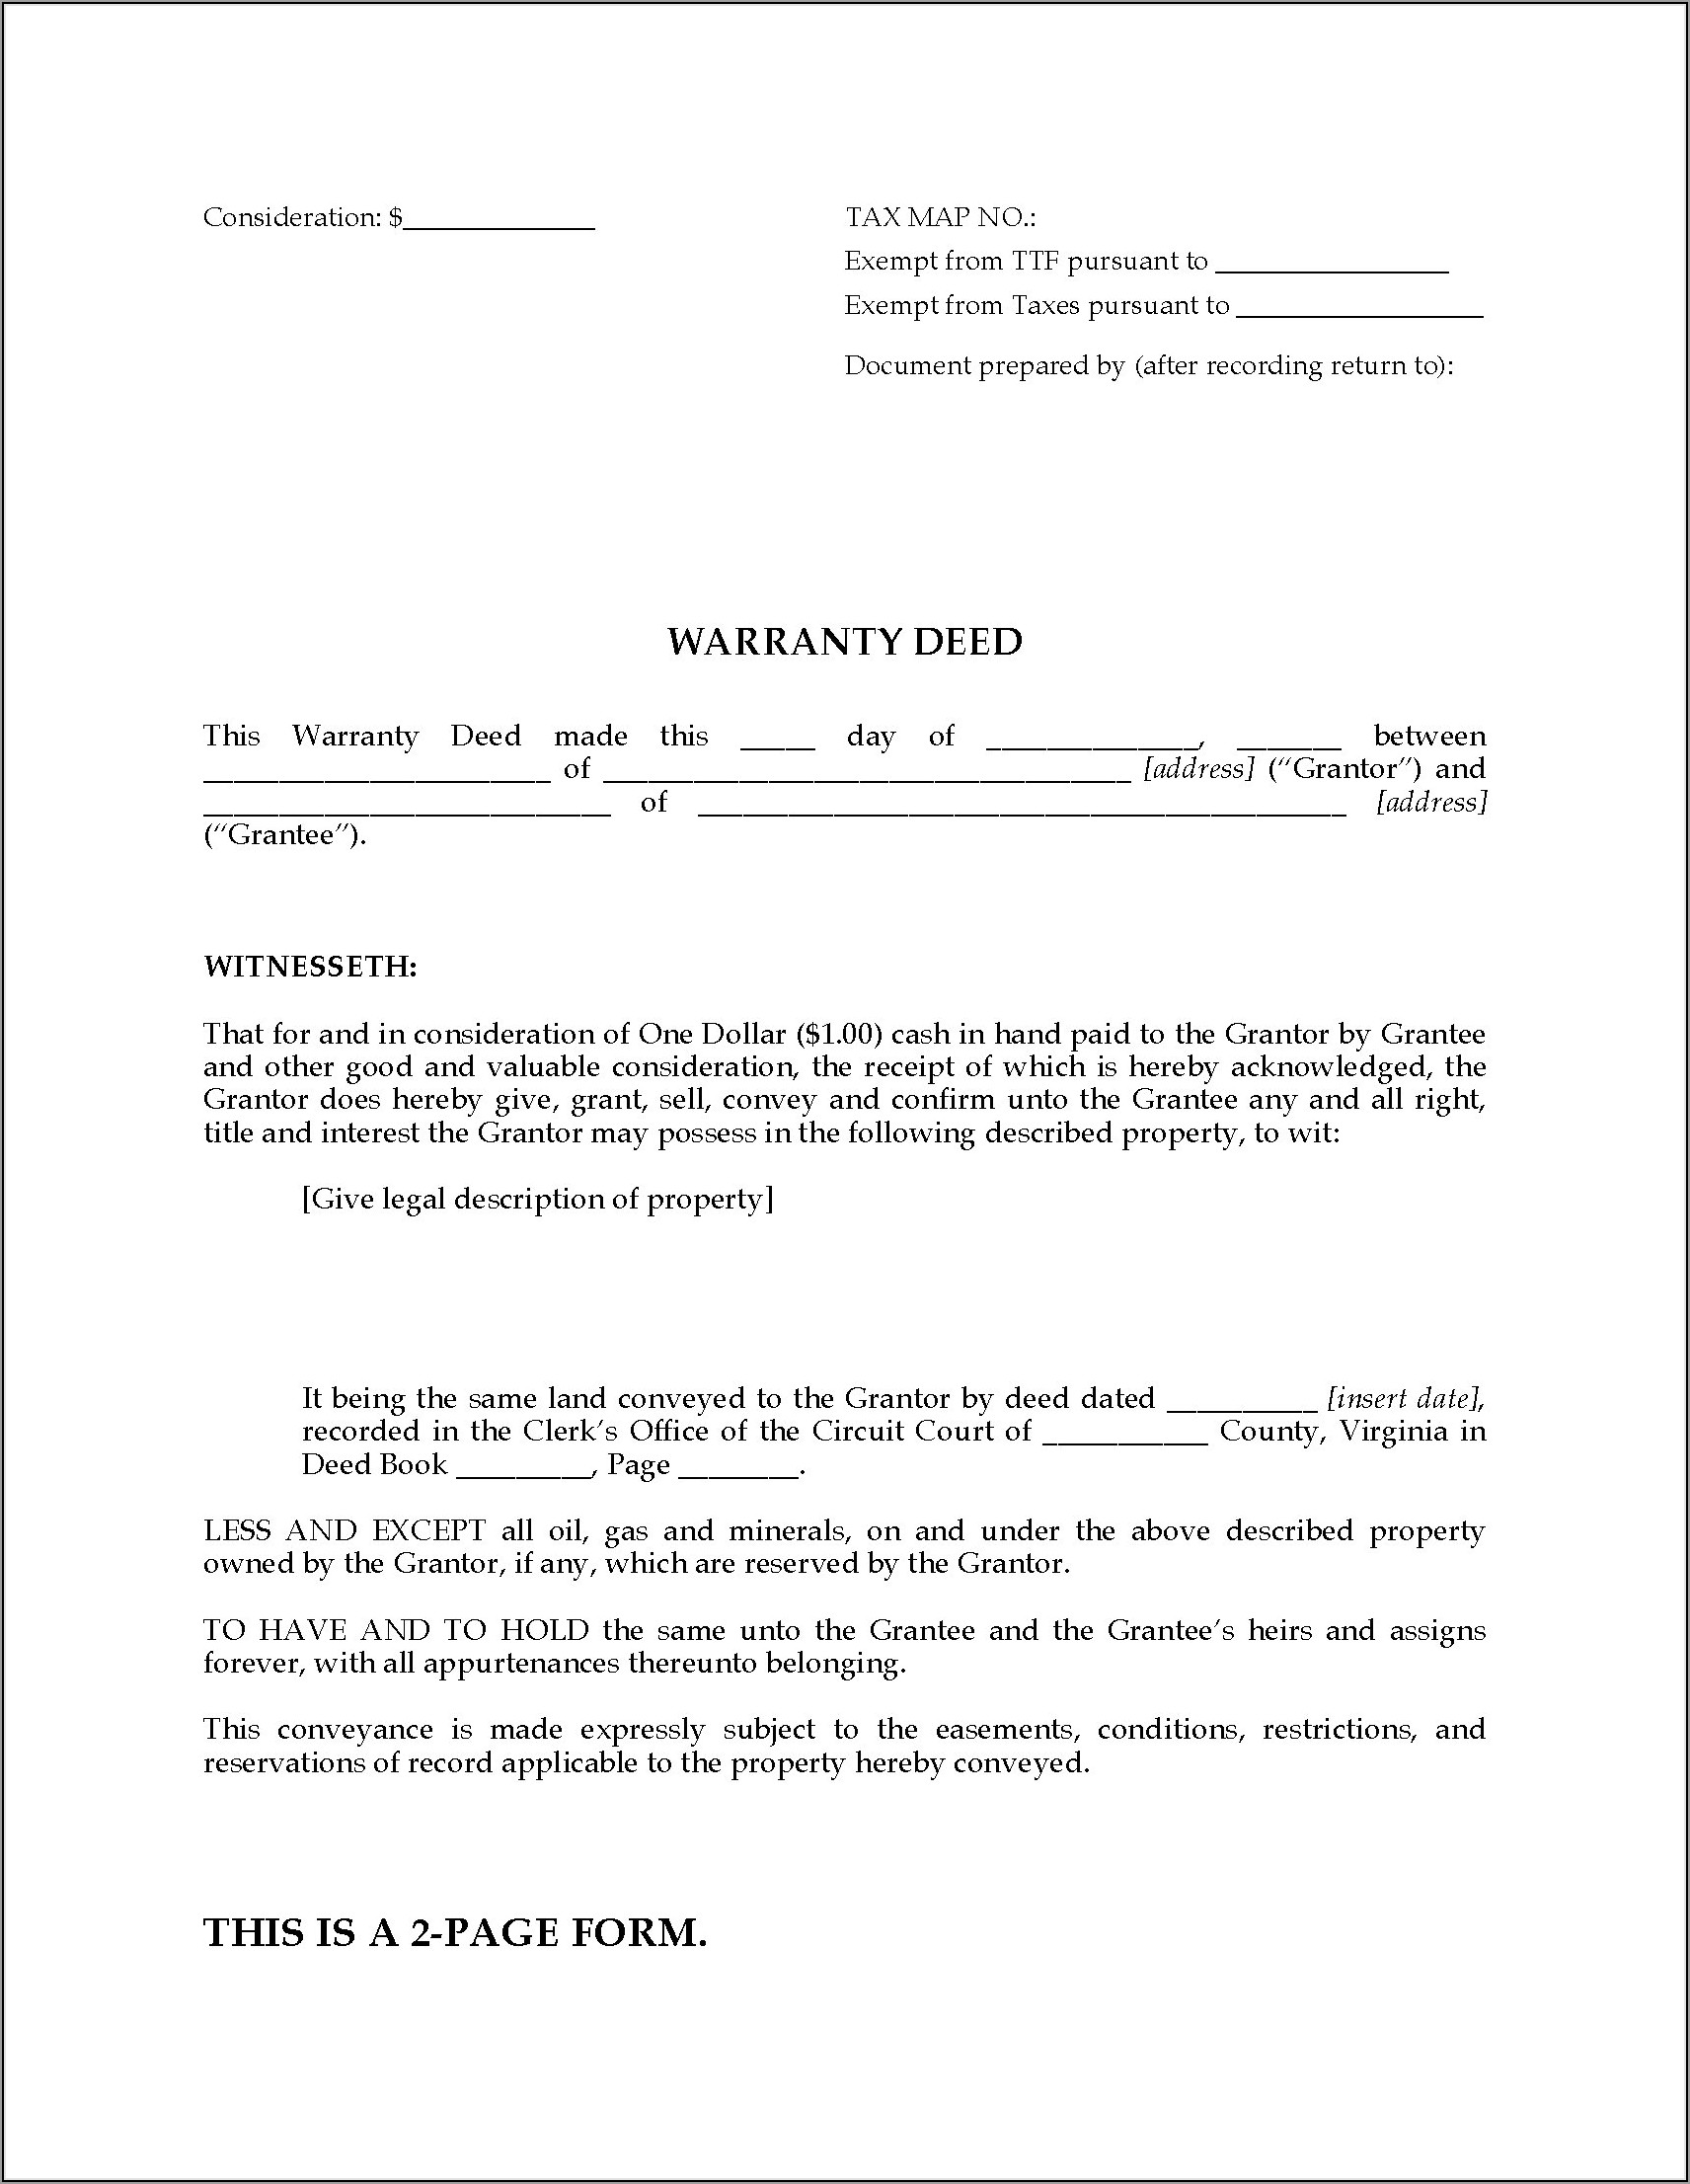 Virginia Warranty Deed Form